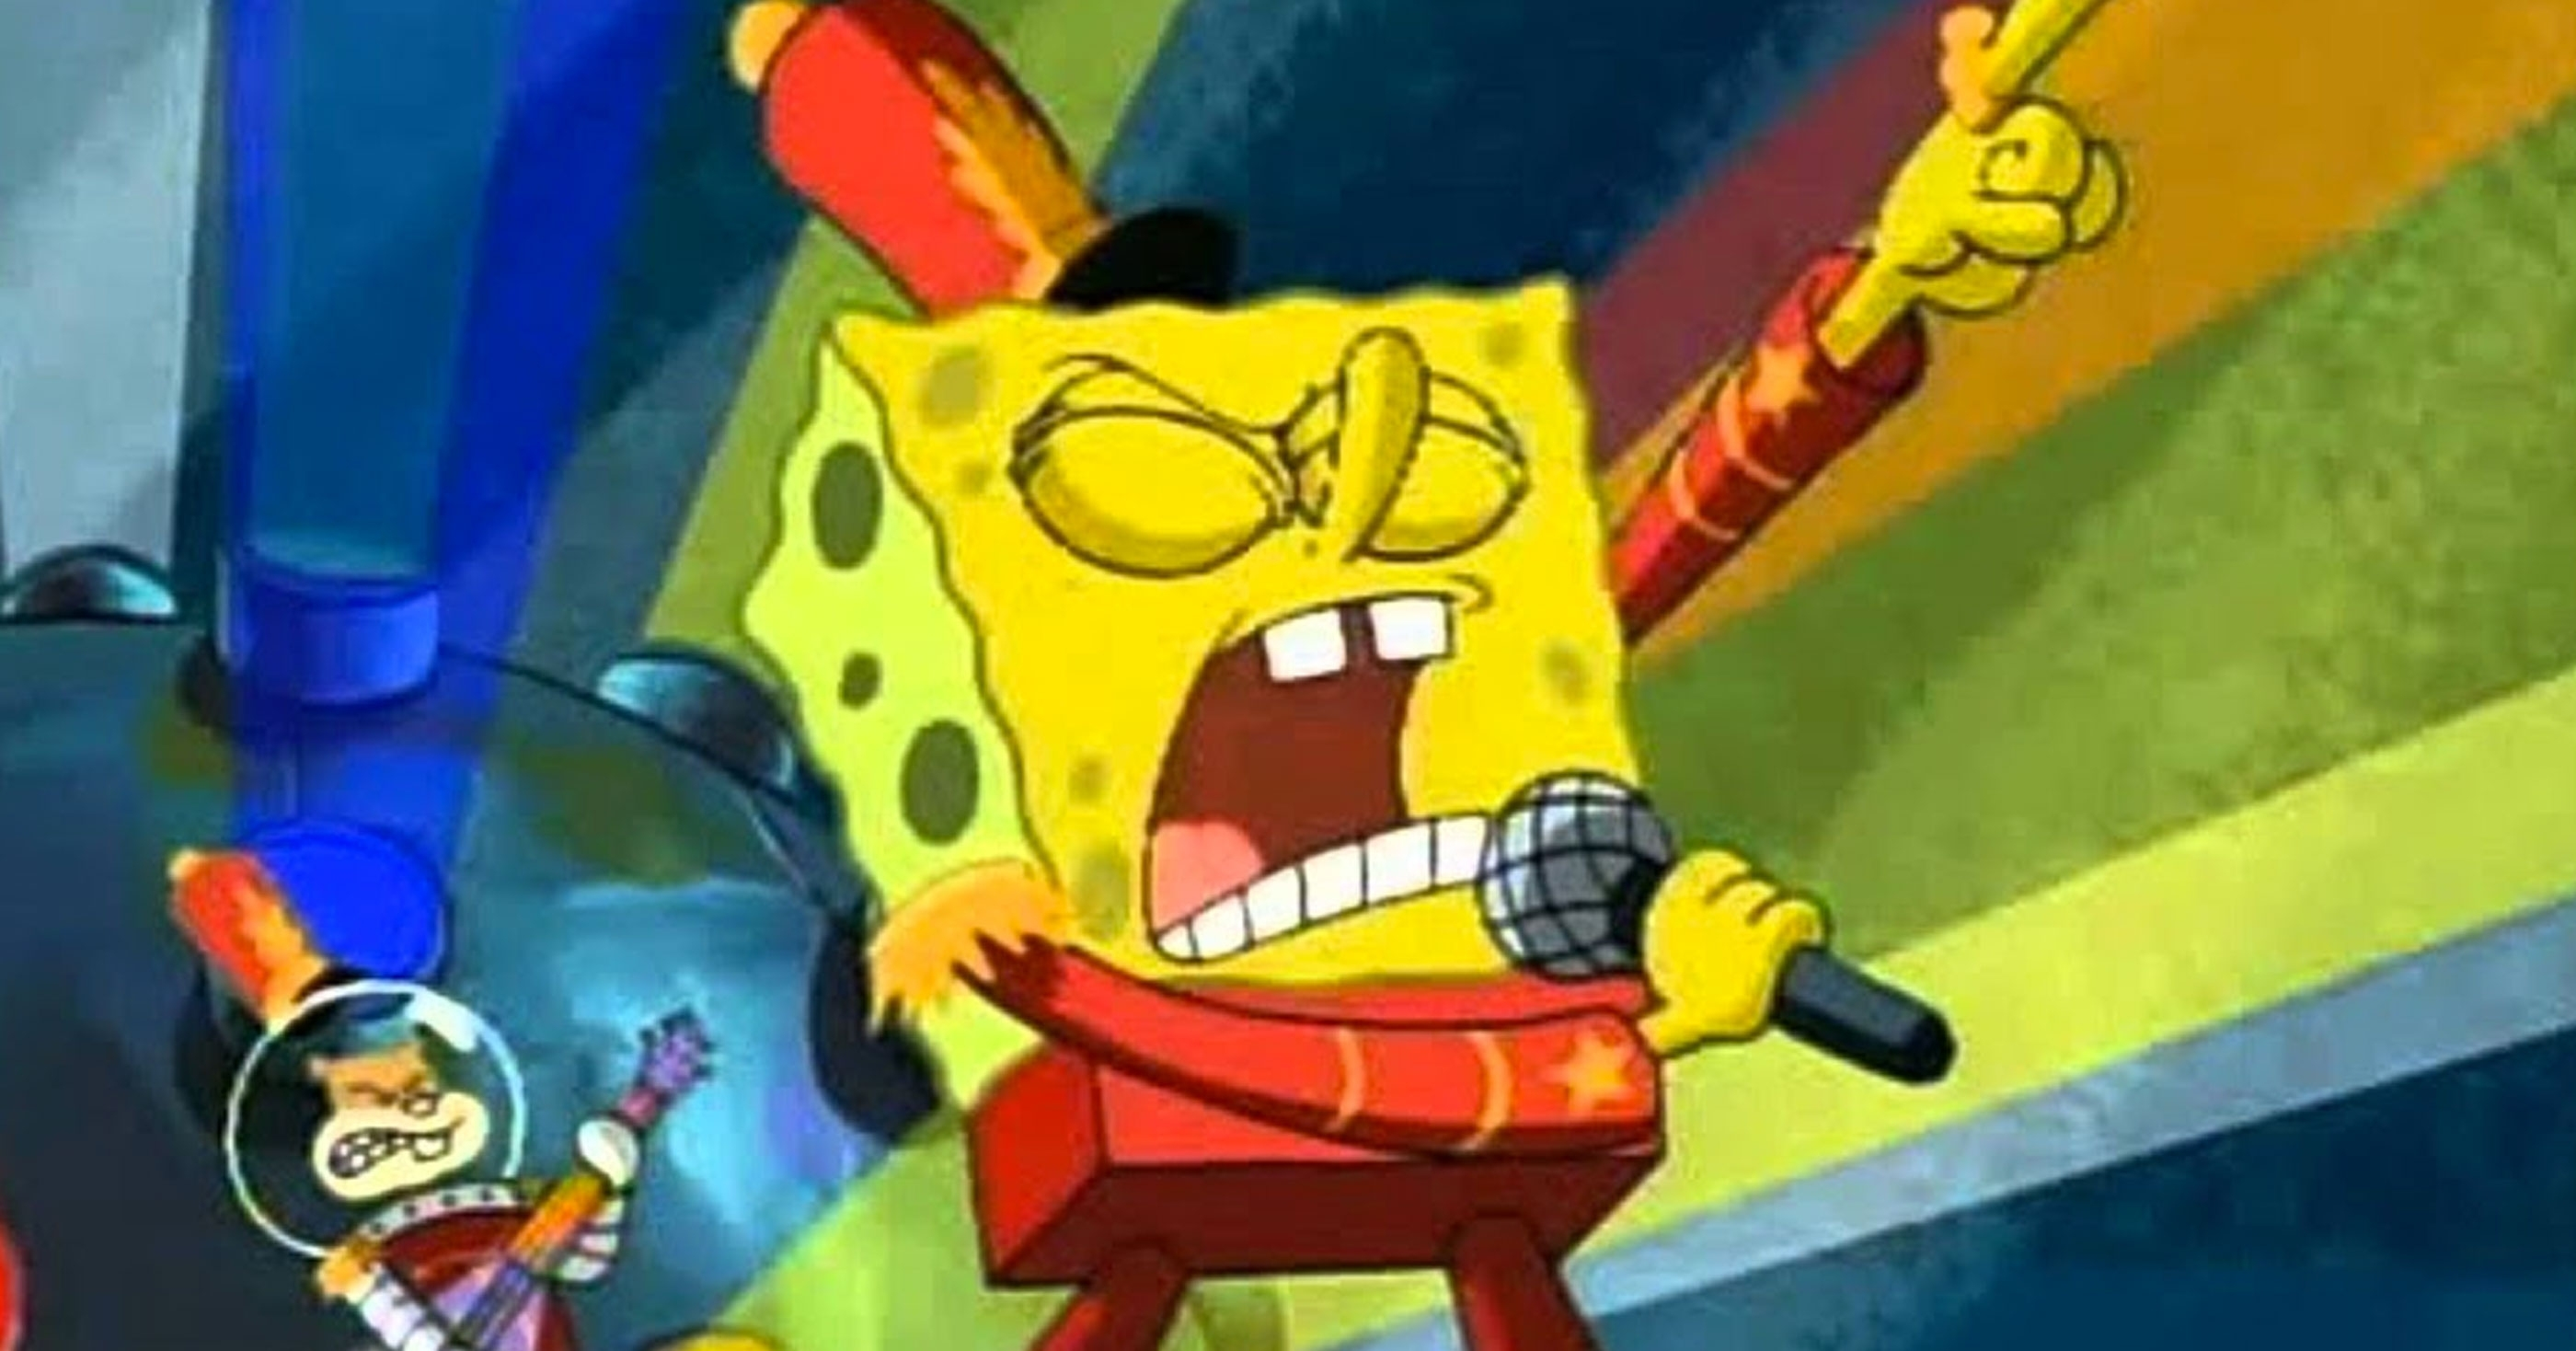 Petition For Spongebob's 'sweet Victory' To Be Super Bowl 53 intended for Spongebob Super Bowl Sweet Victory